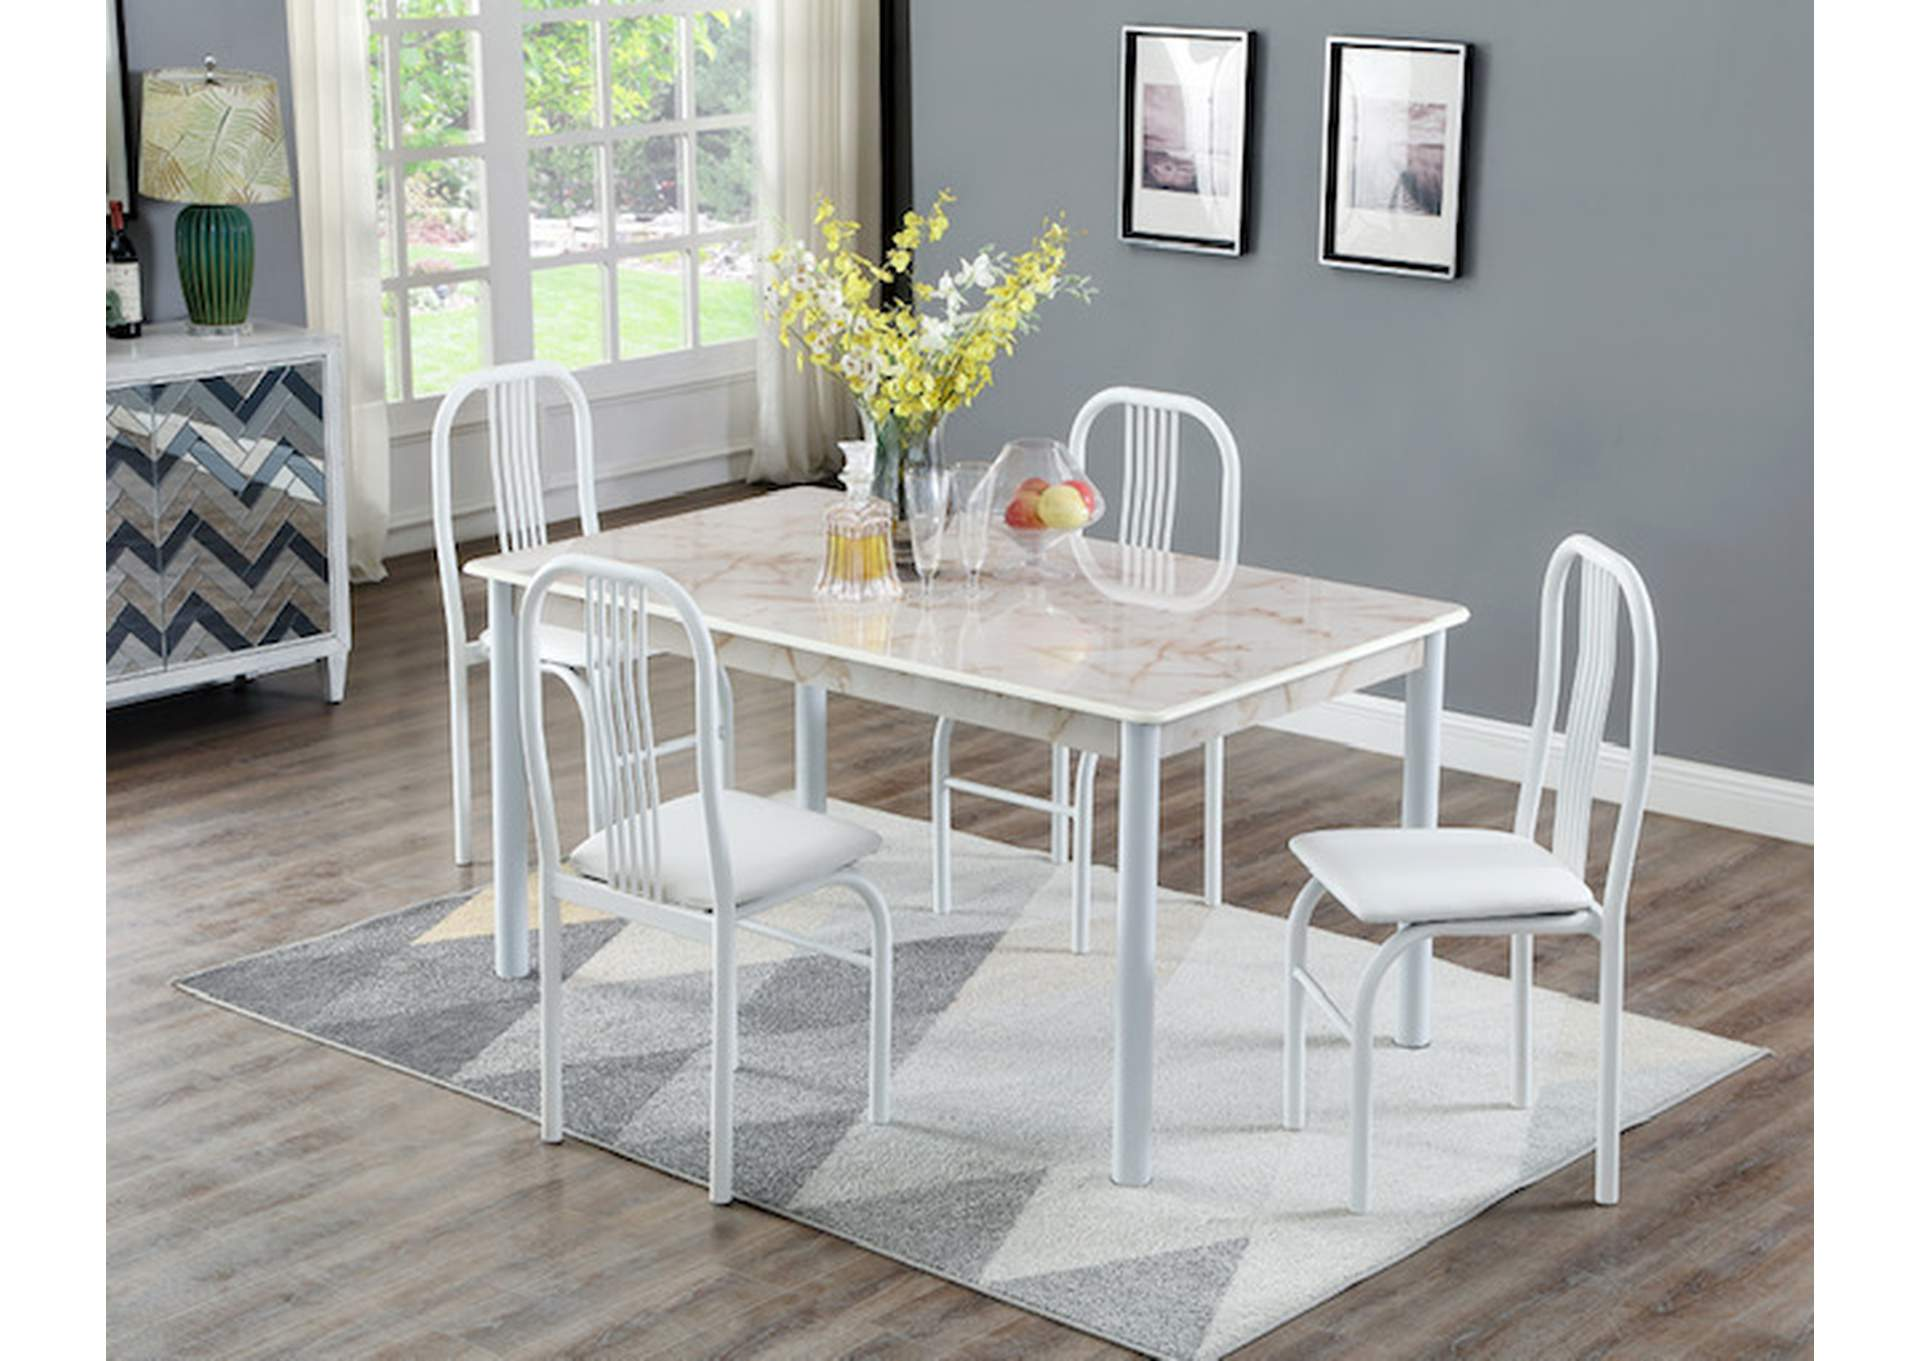 White Marble Top Dinette W/ 4 Chairs,Global Trading